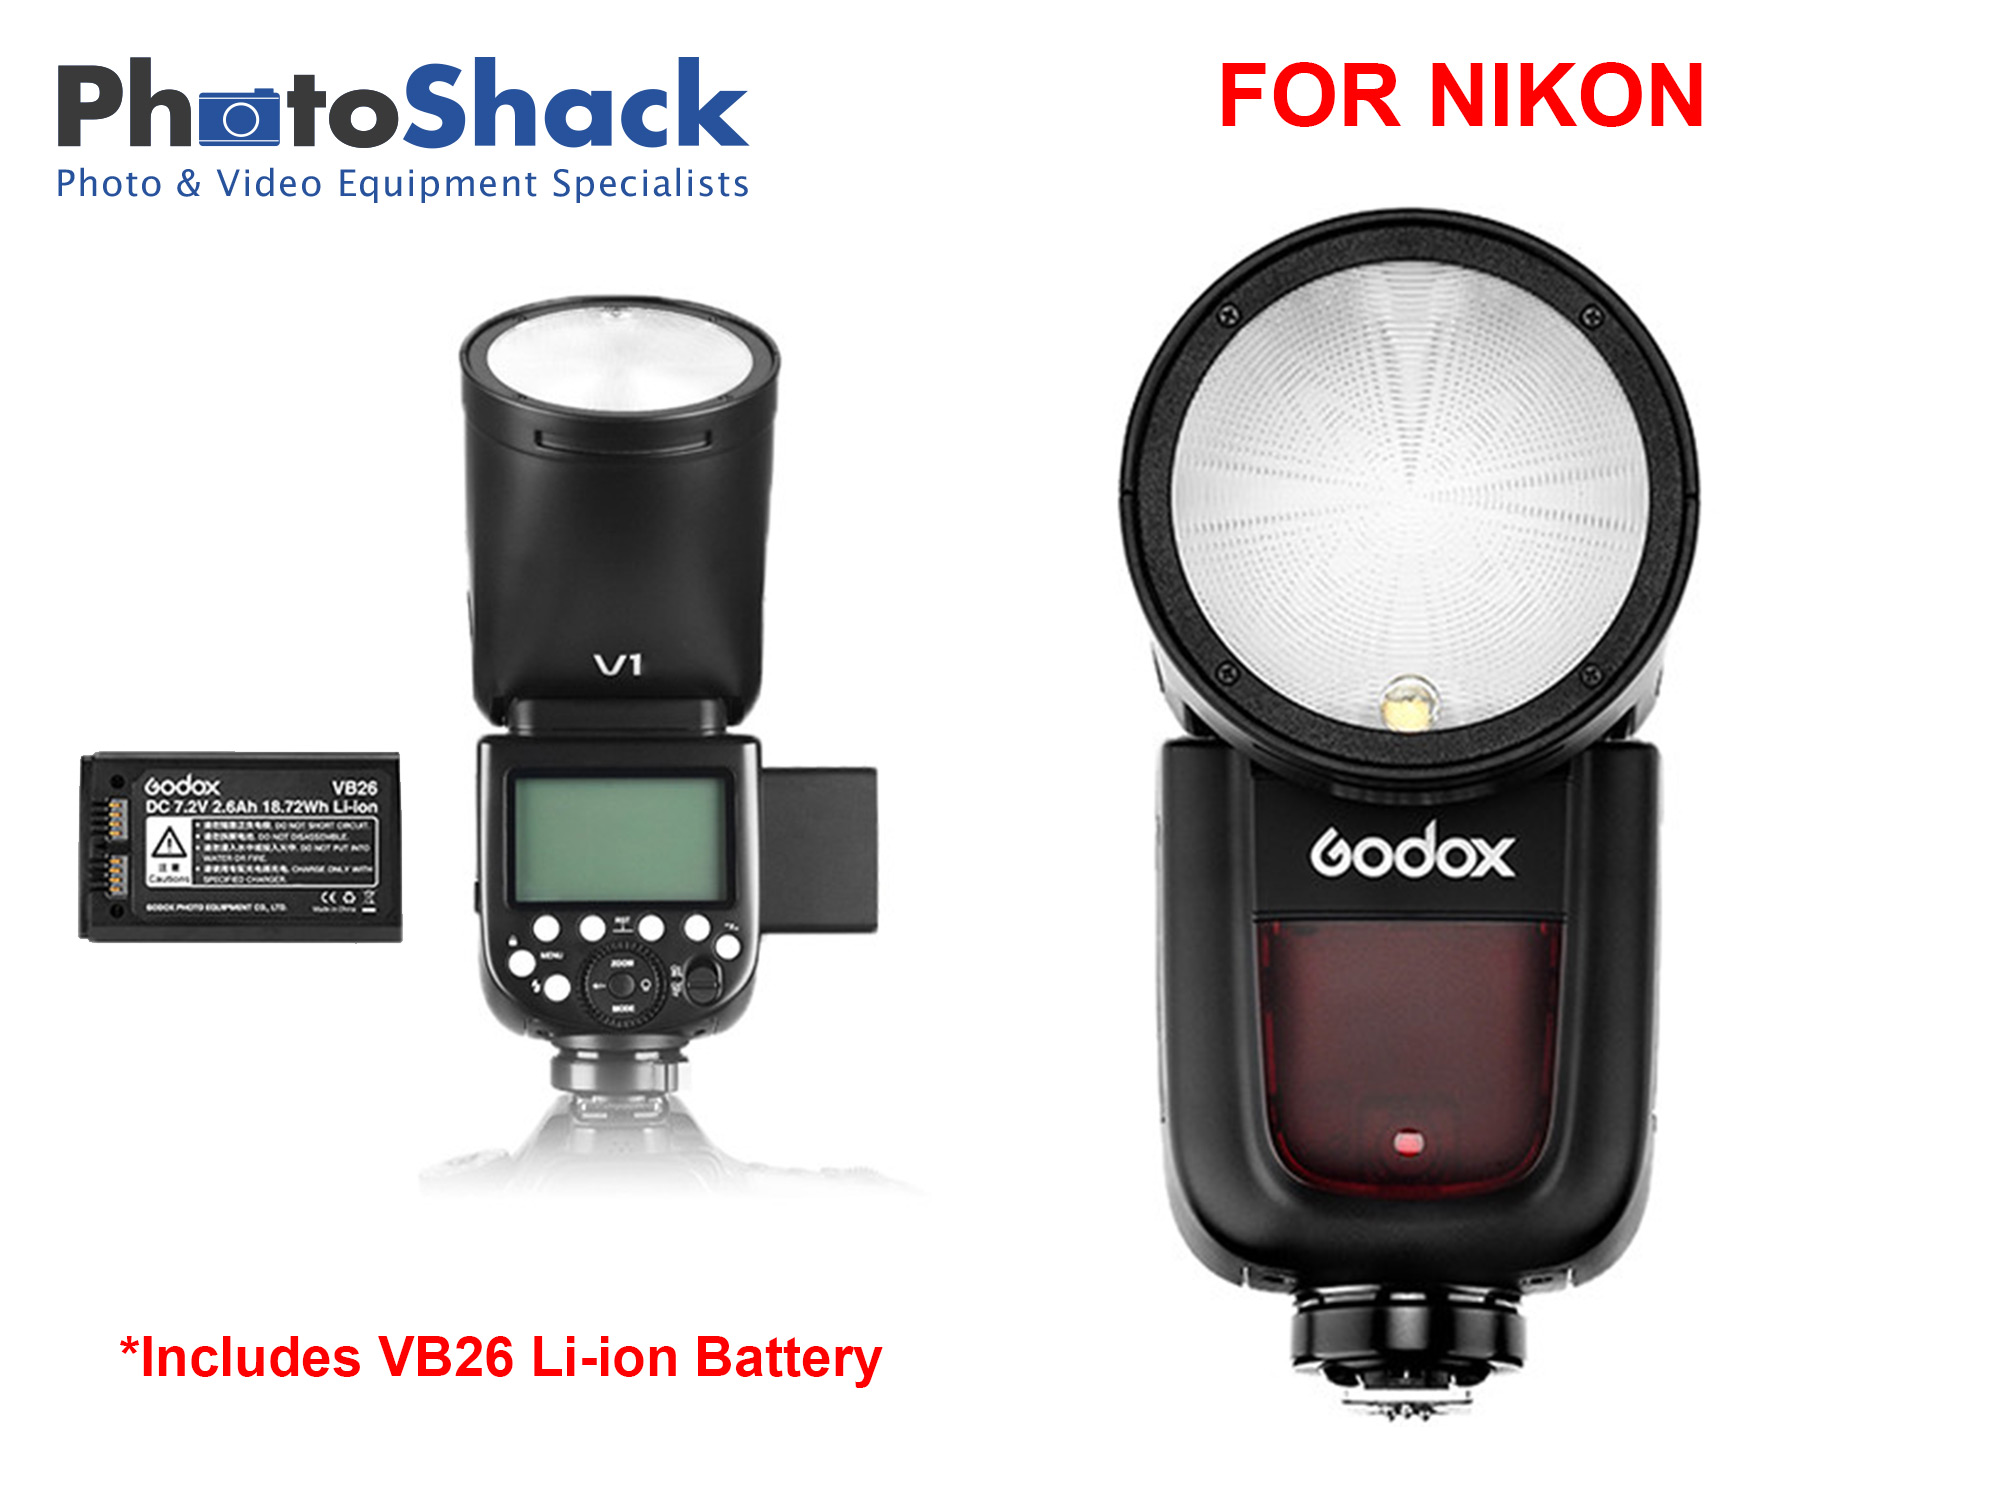 Godox V1 Flash for Nikon